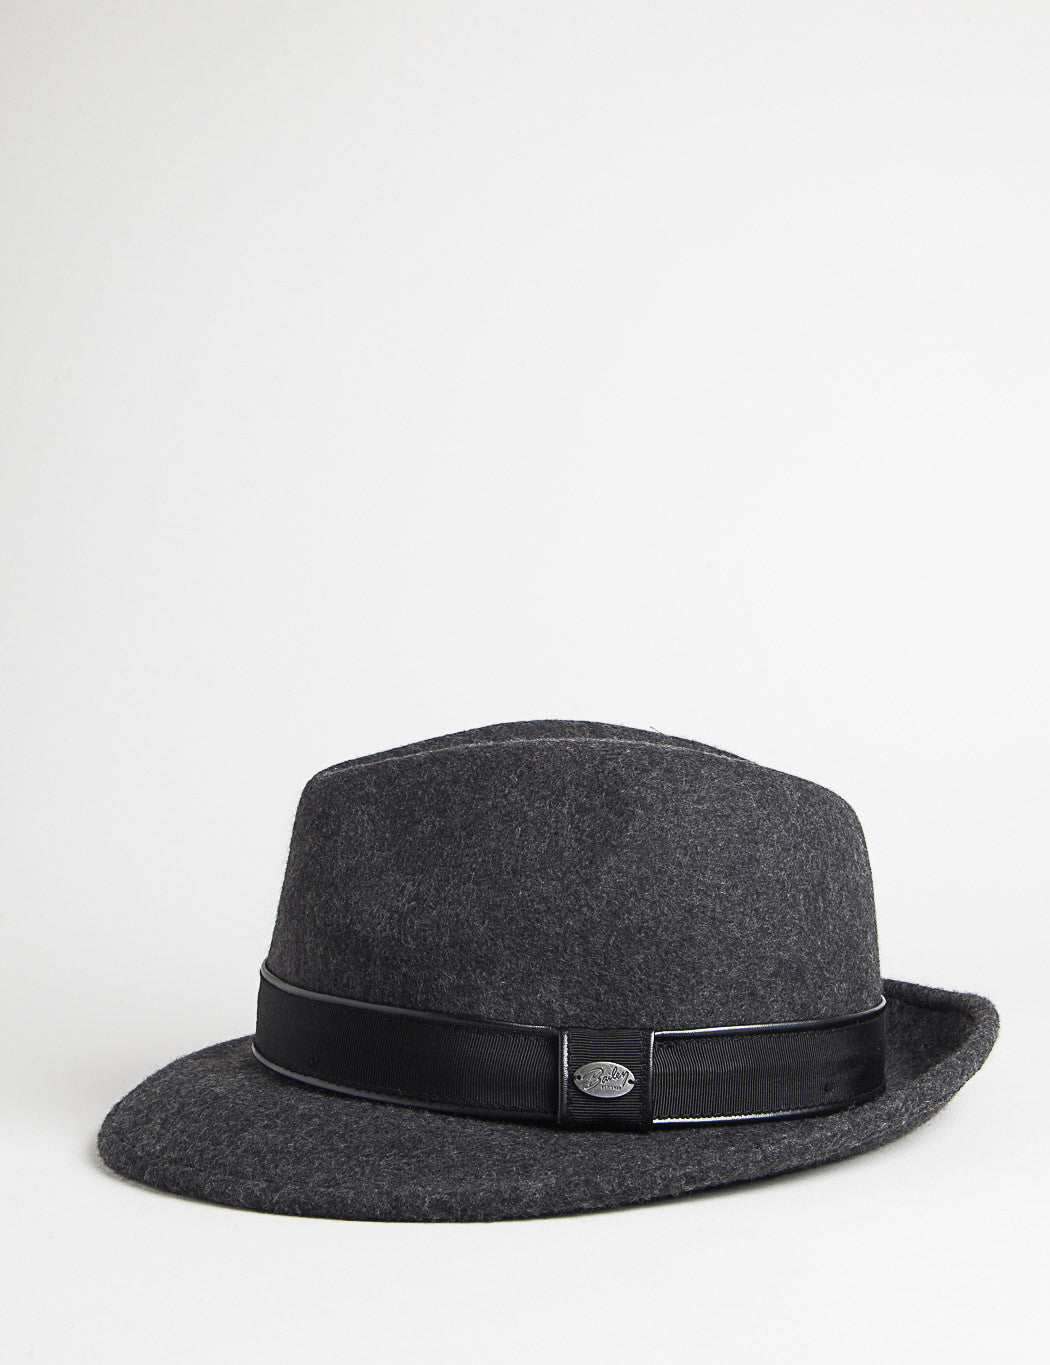 Bailey Donal Fedora Hat - Black Mix